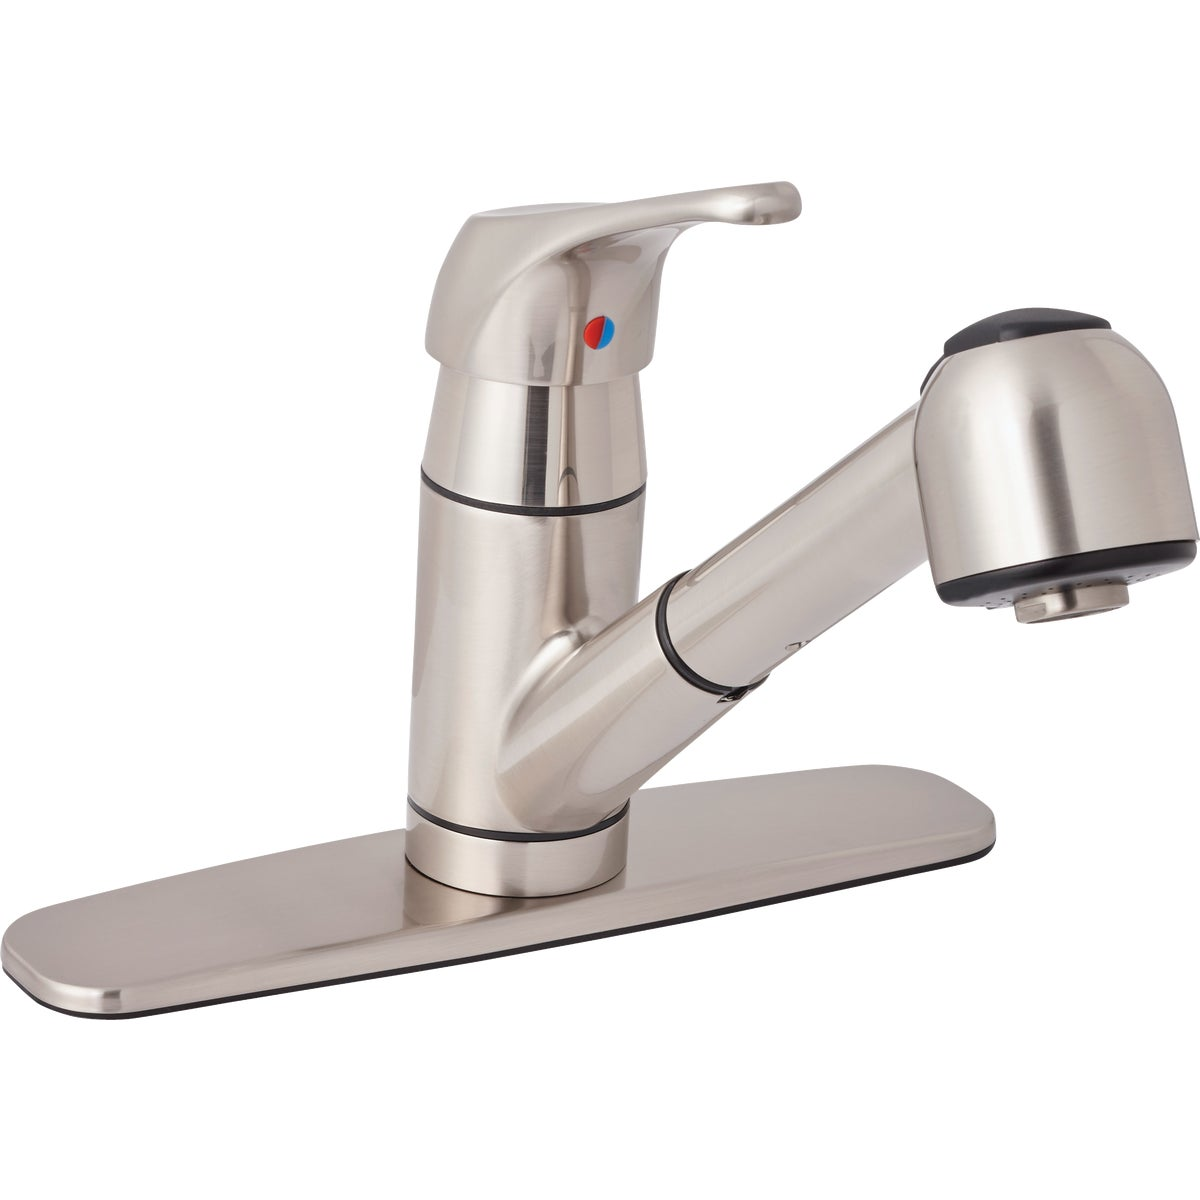 BN KITCHEN FAUCET - FP1C4200NP-JPA1 by Globe Union